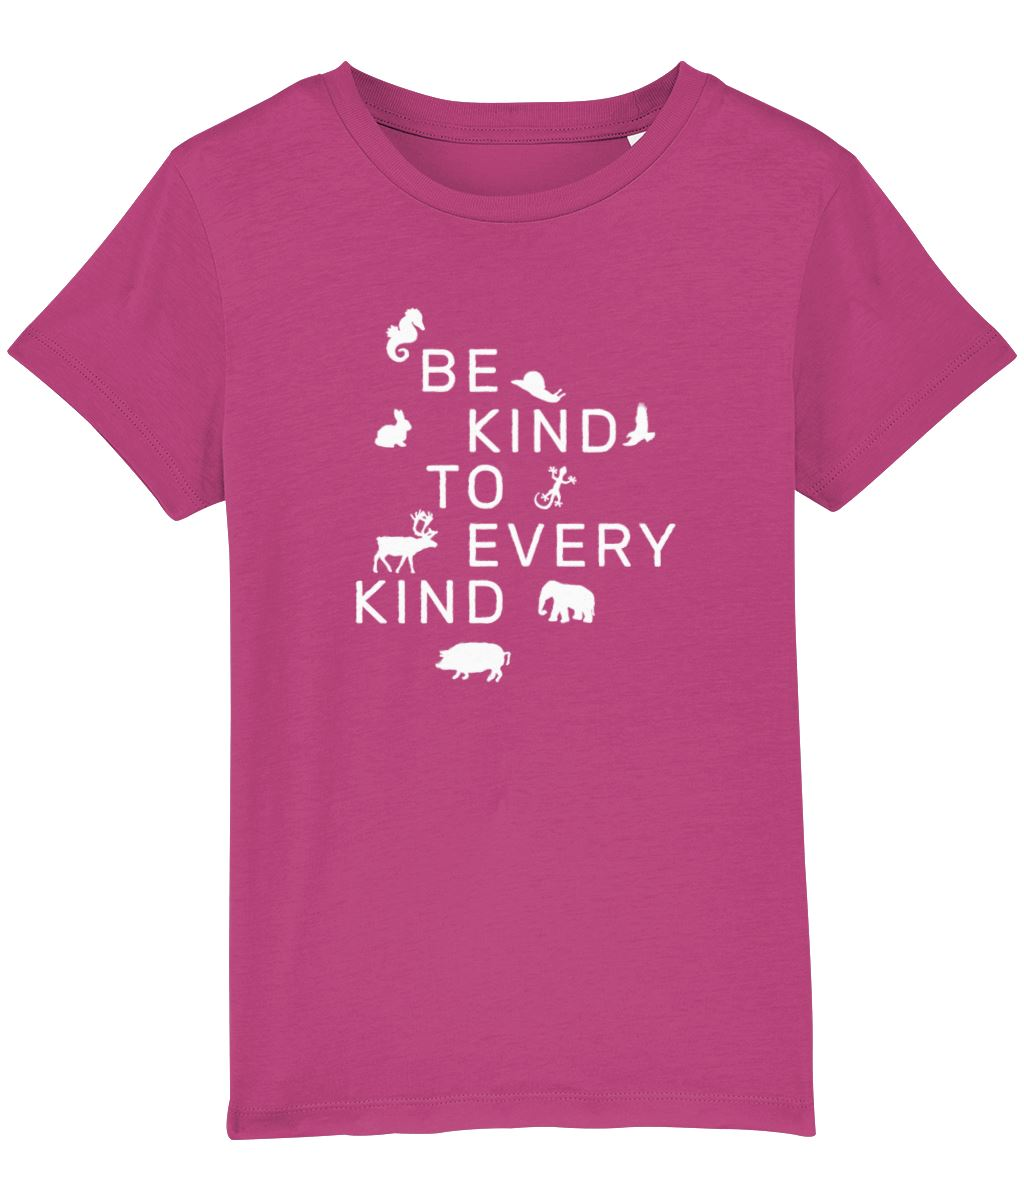 """Be Kind To Every Kind"" Children's Vegan T-Shirt (Unisex) Clothing Vegan Original Raspberry 3-4 years"